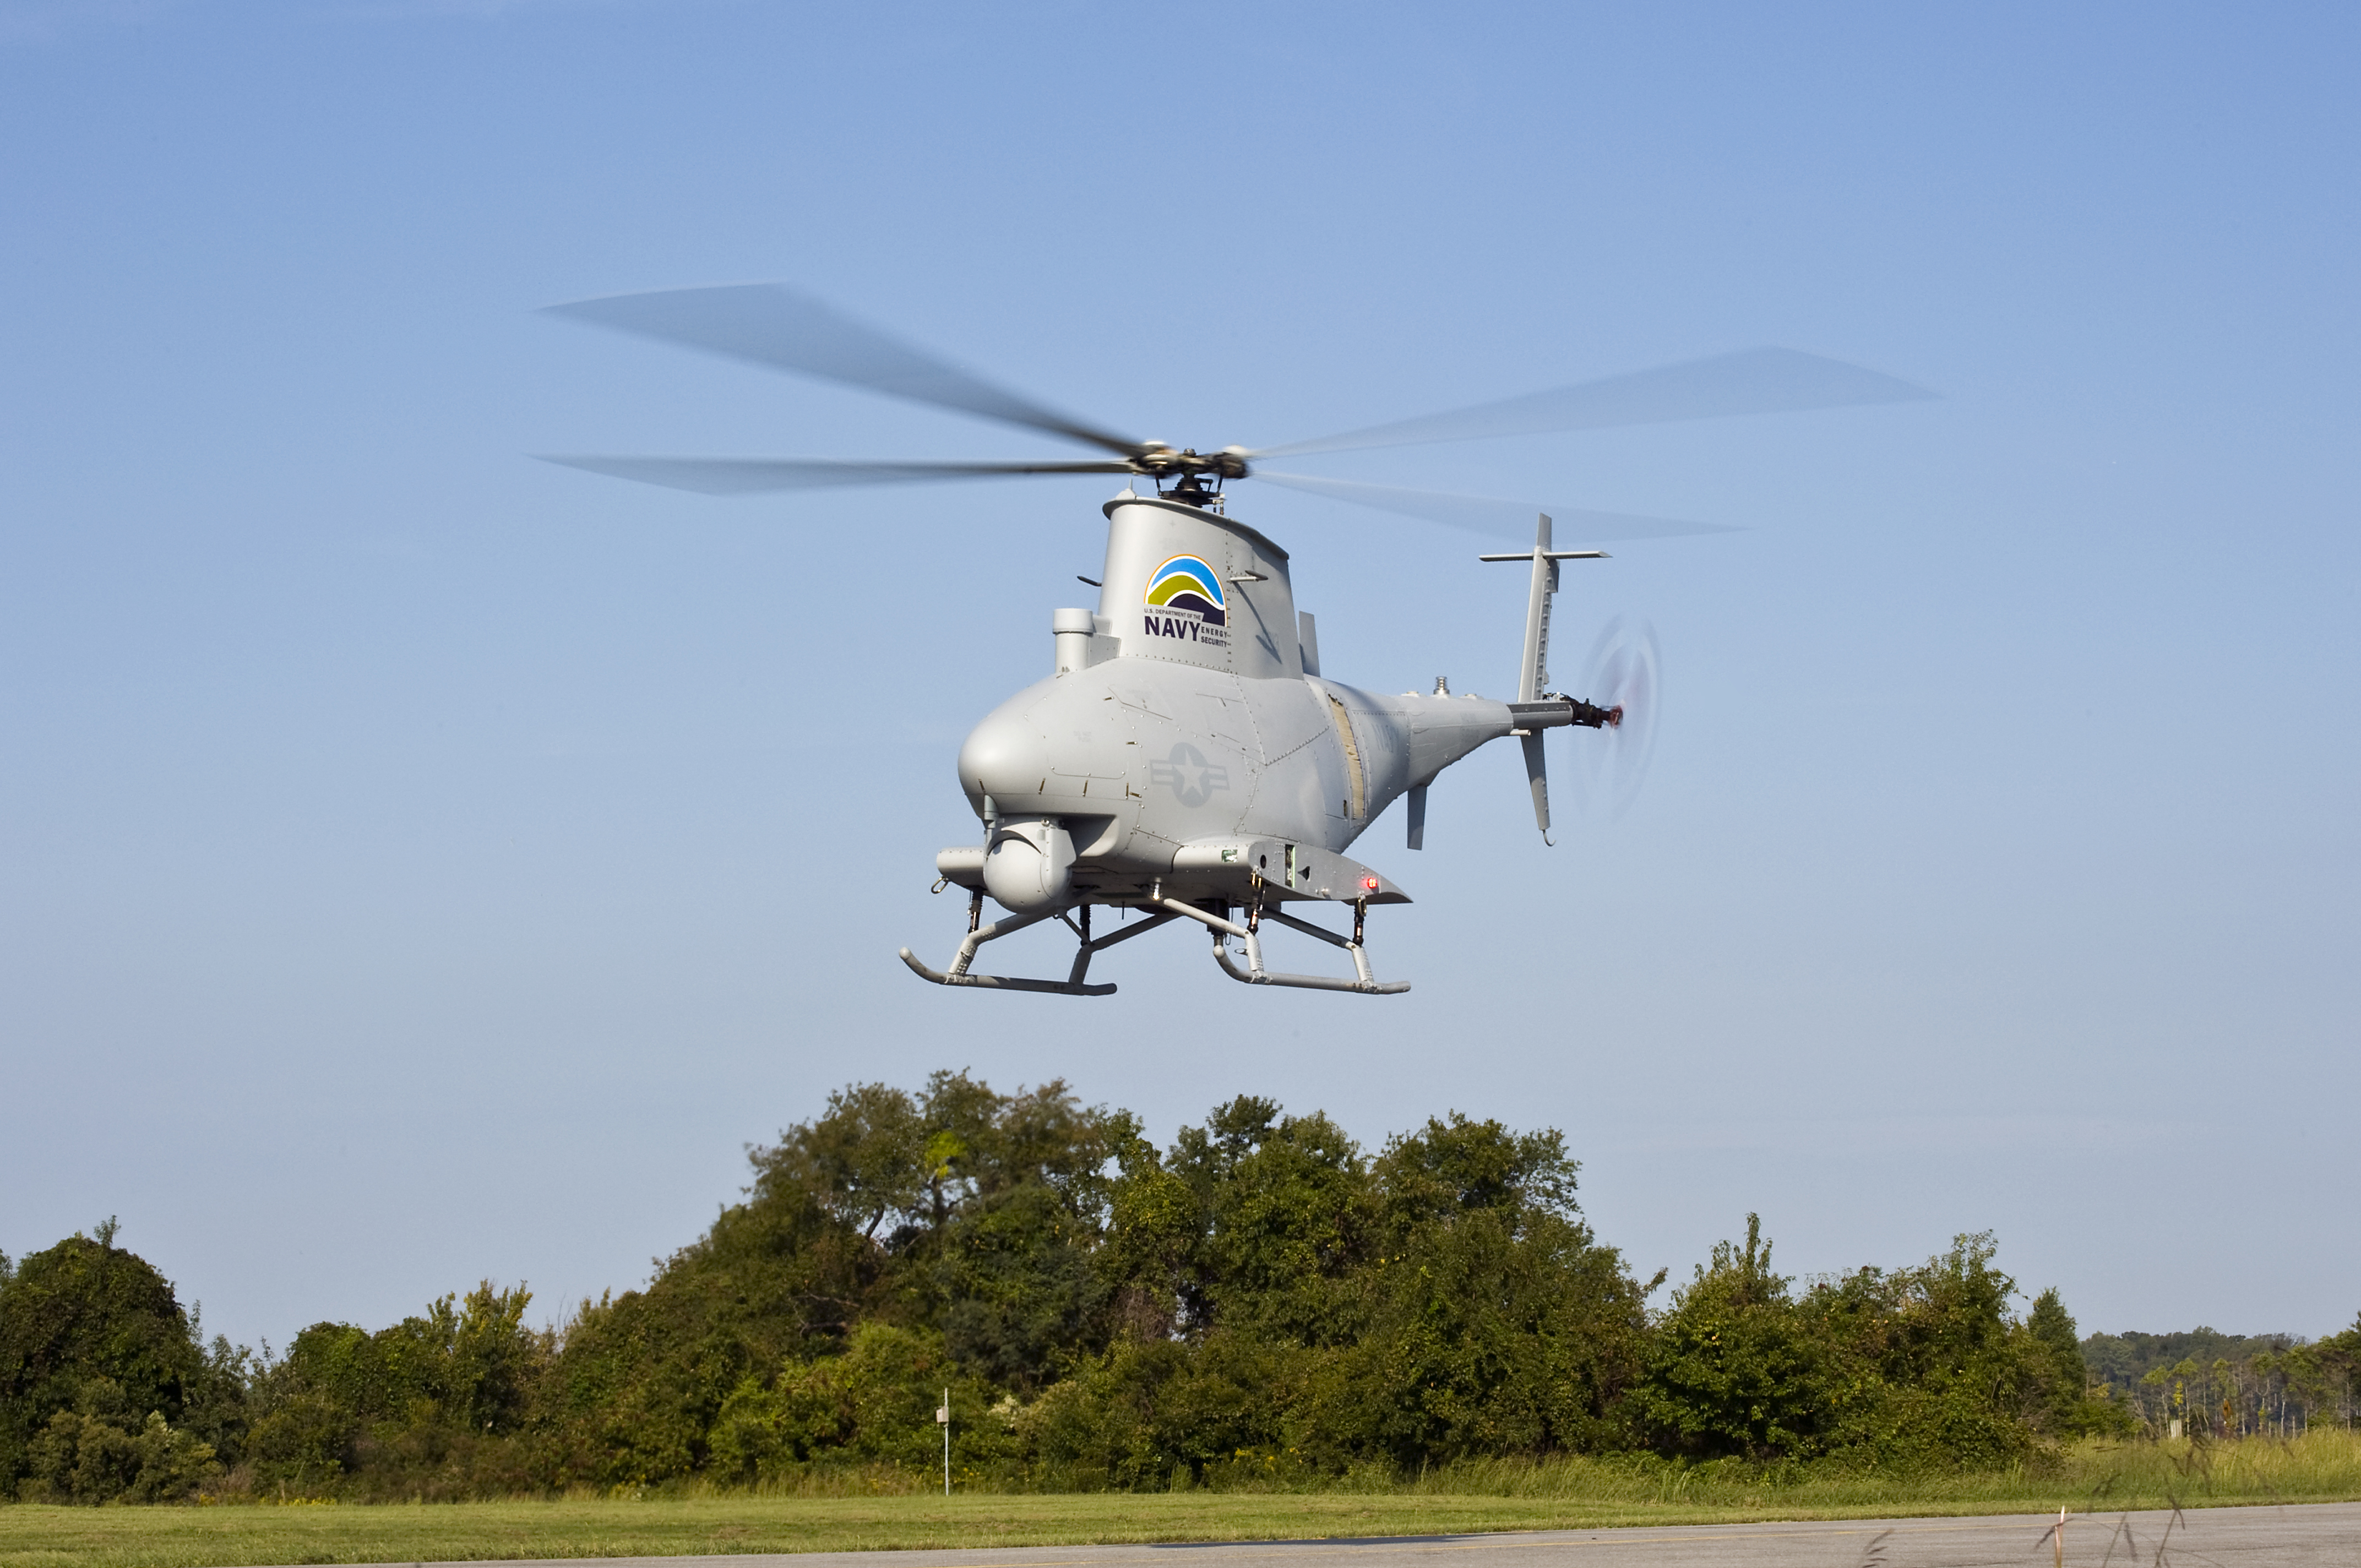 drones unmanned aerial vehicles essay Owing to their dynamic and multidisciplinary characteristics, unmanned aerial  vehicles (uavs), or drones, have become increasingly popular.